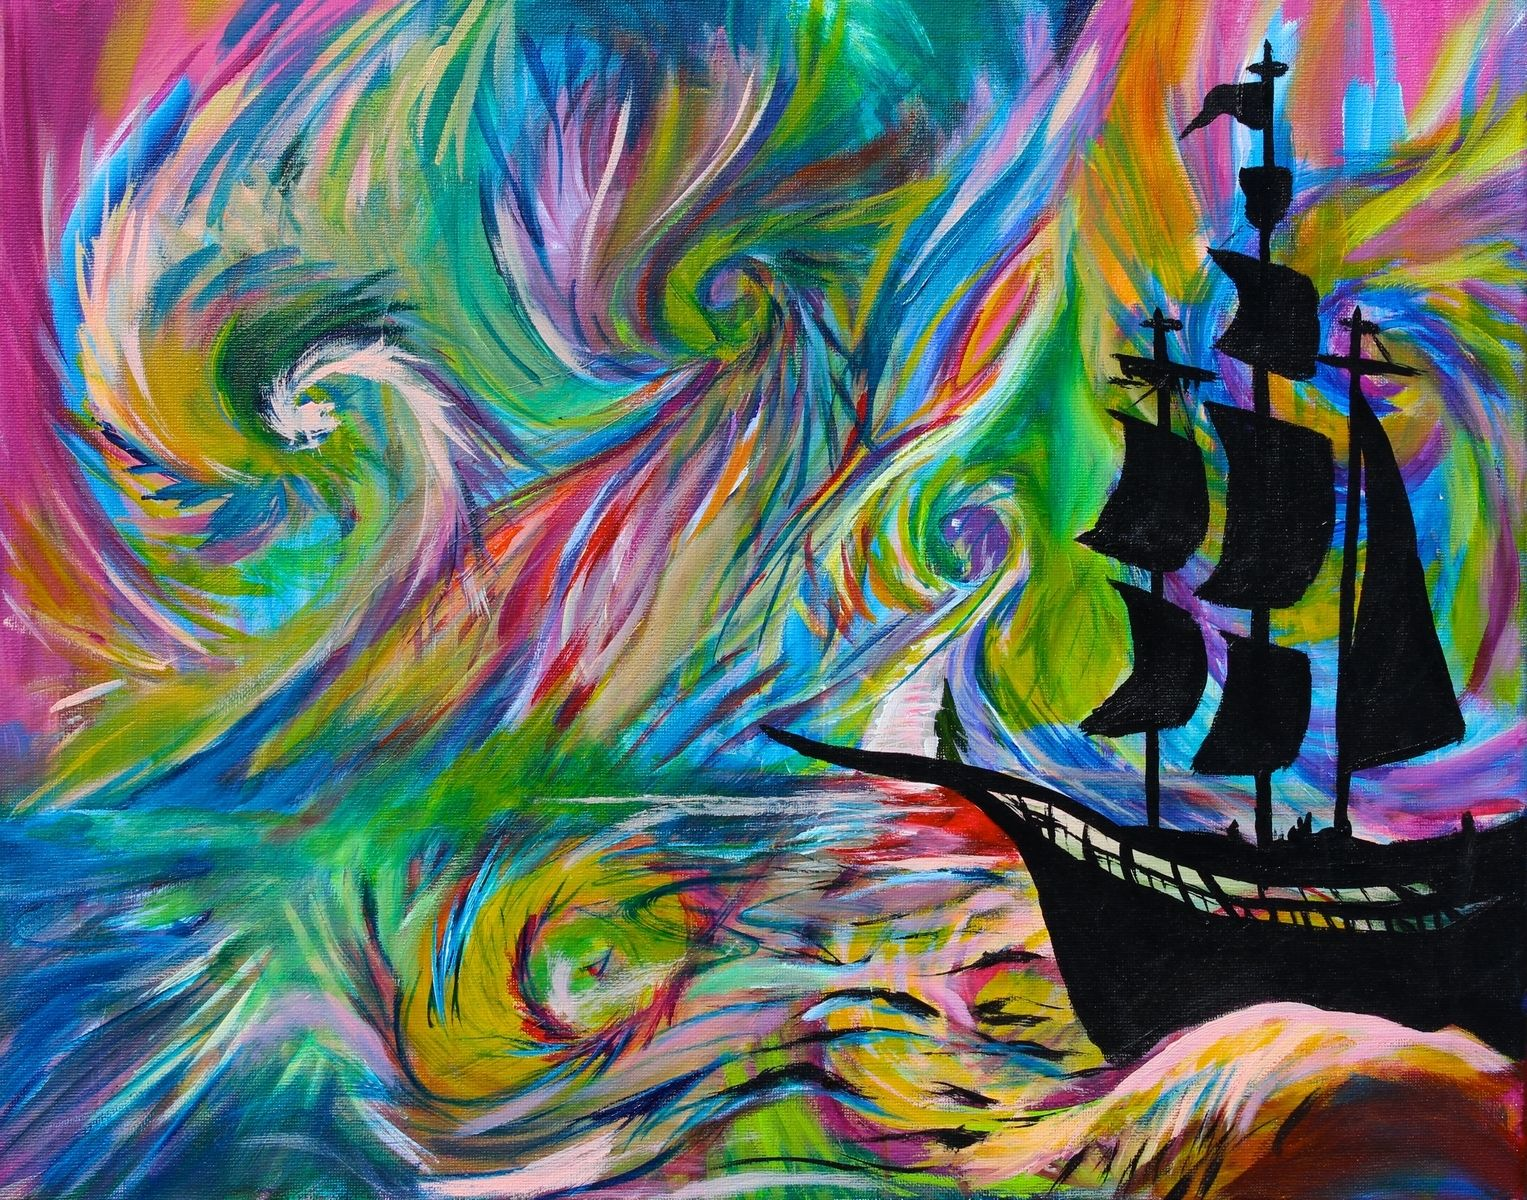 Steampunk Home Decor Ideas Handmade Painting Psychedelic Ship Pirate Ship